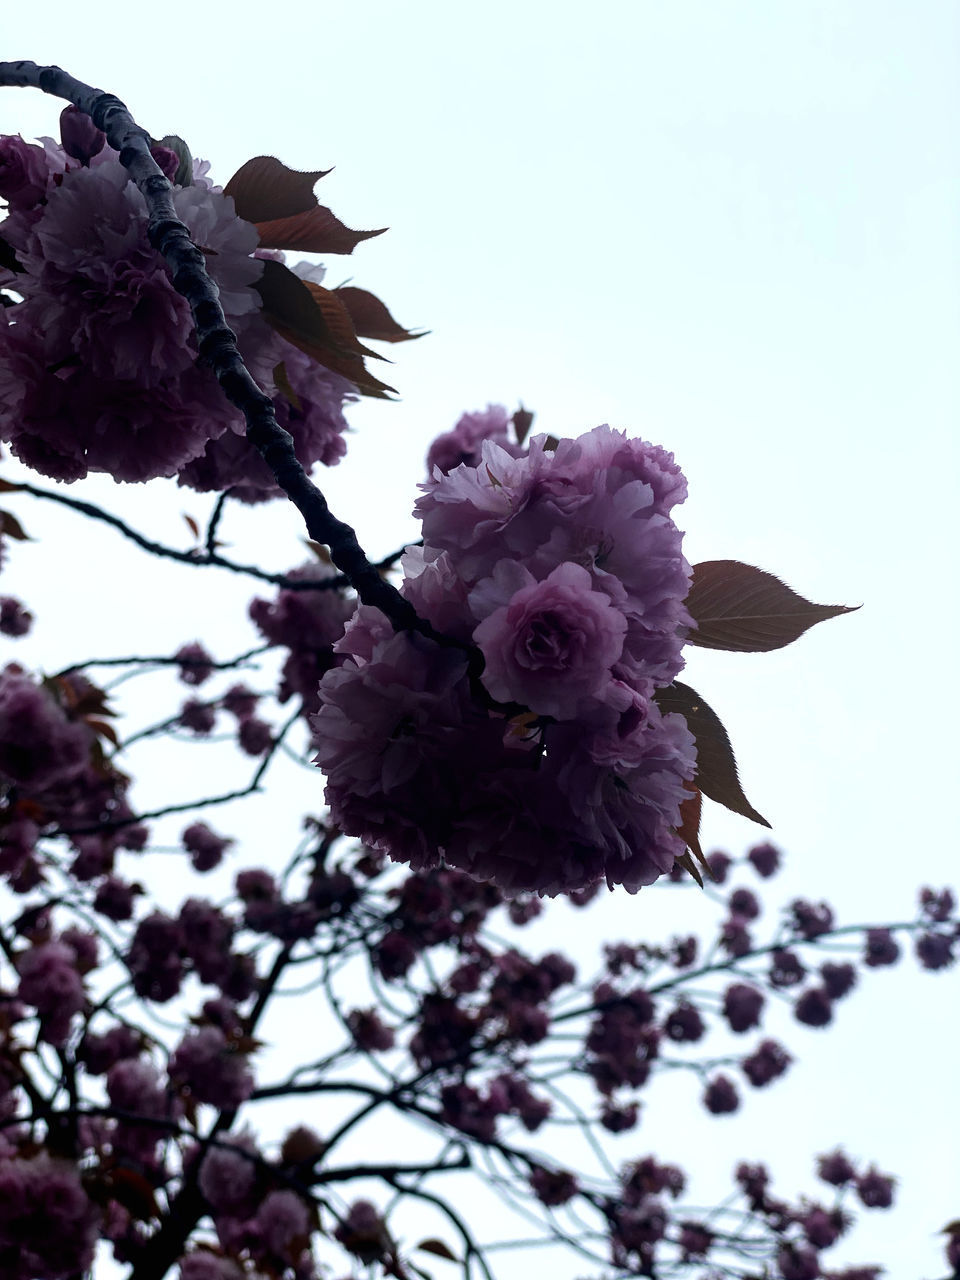 LOW ANGLE VIEW OF FRESH PURPLE FLOWER WITH TREE AGAINST SKY